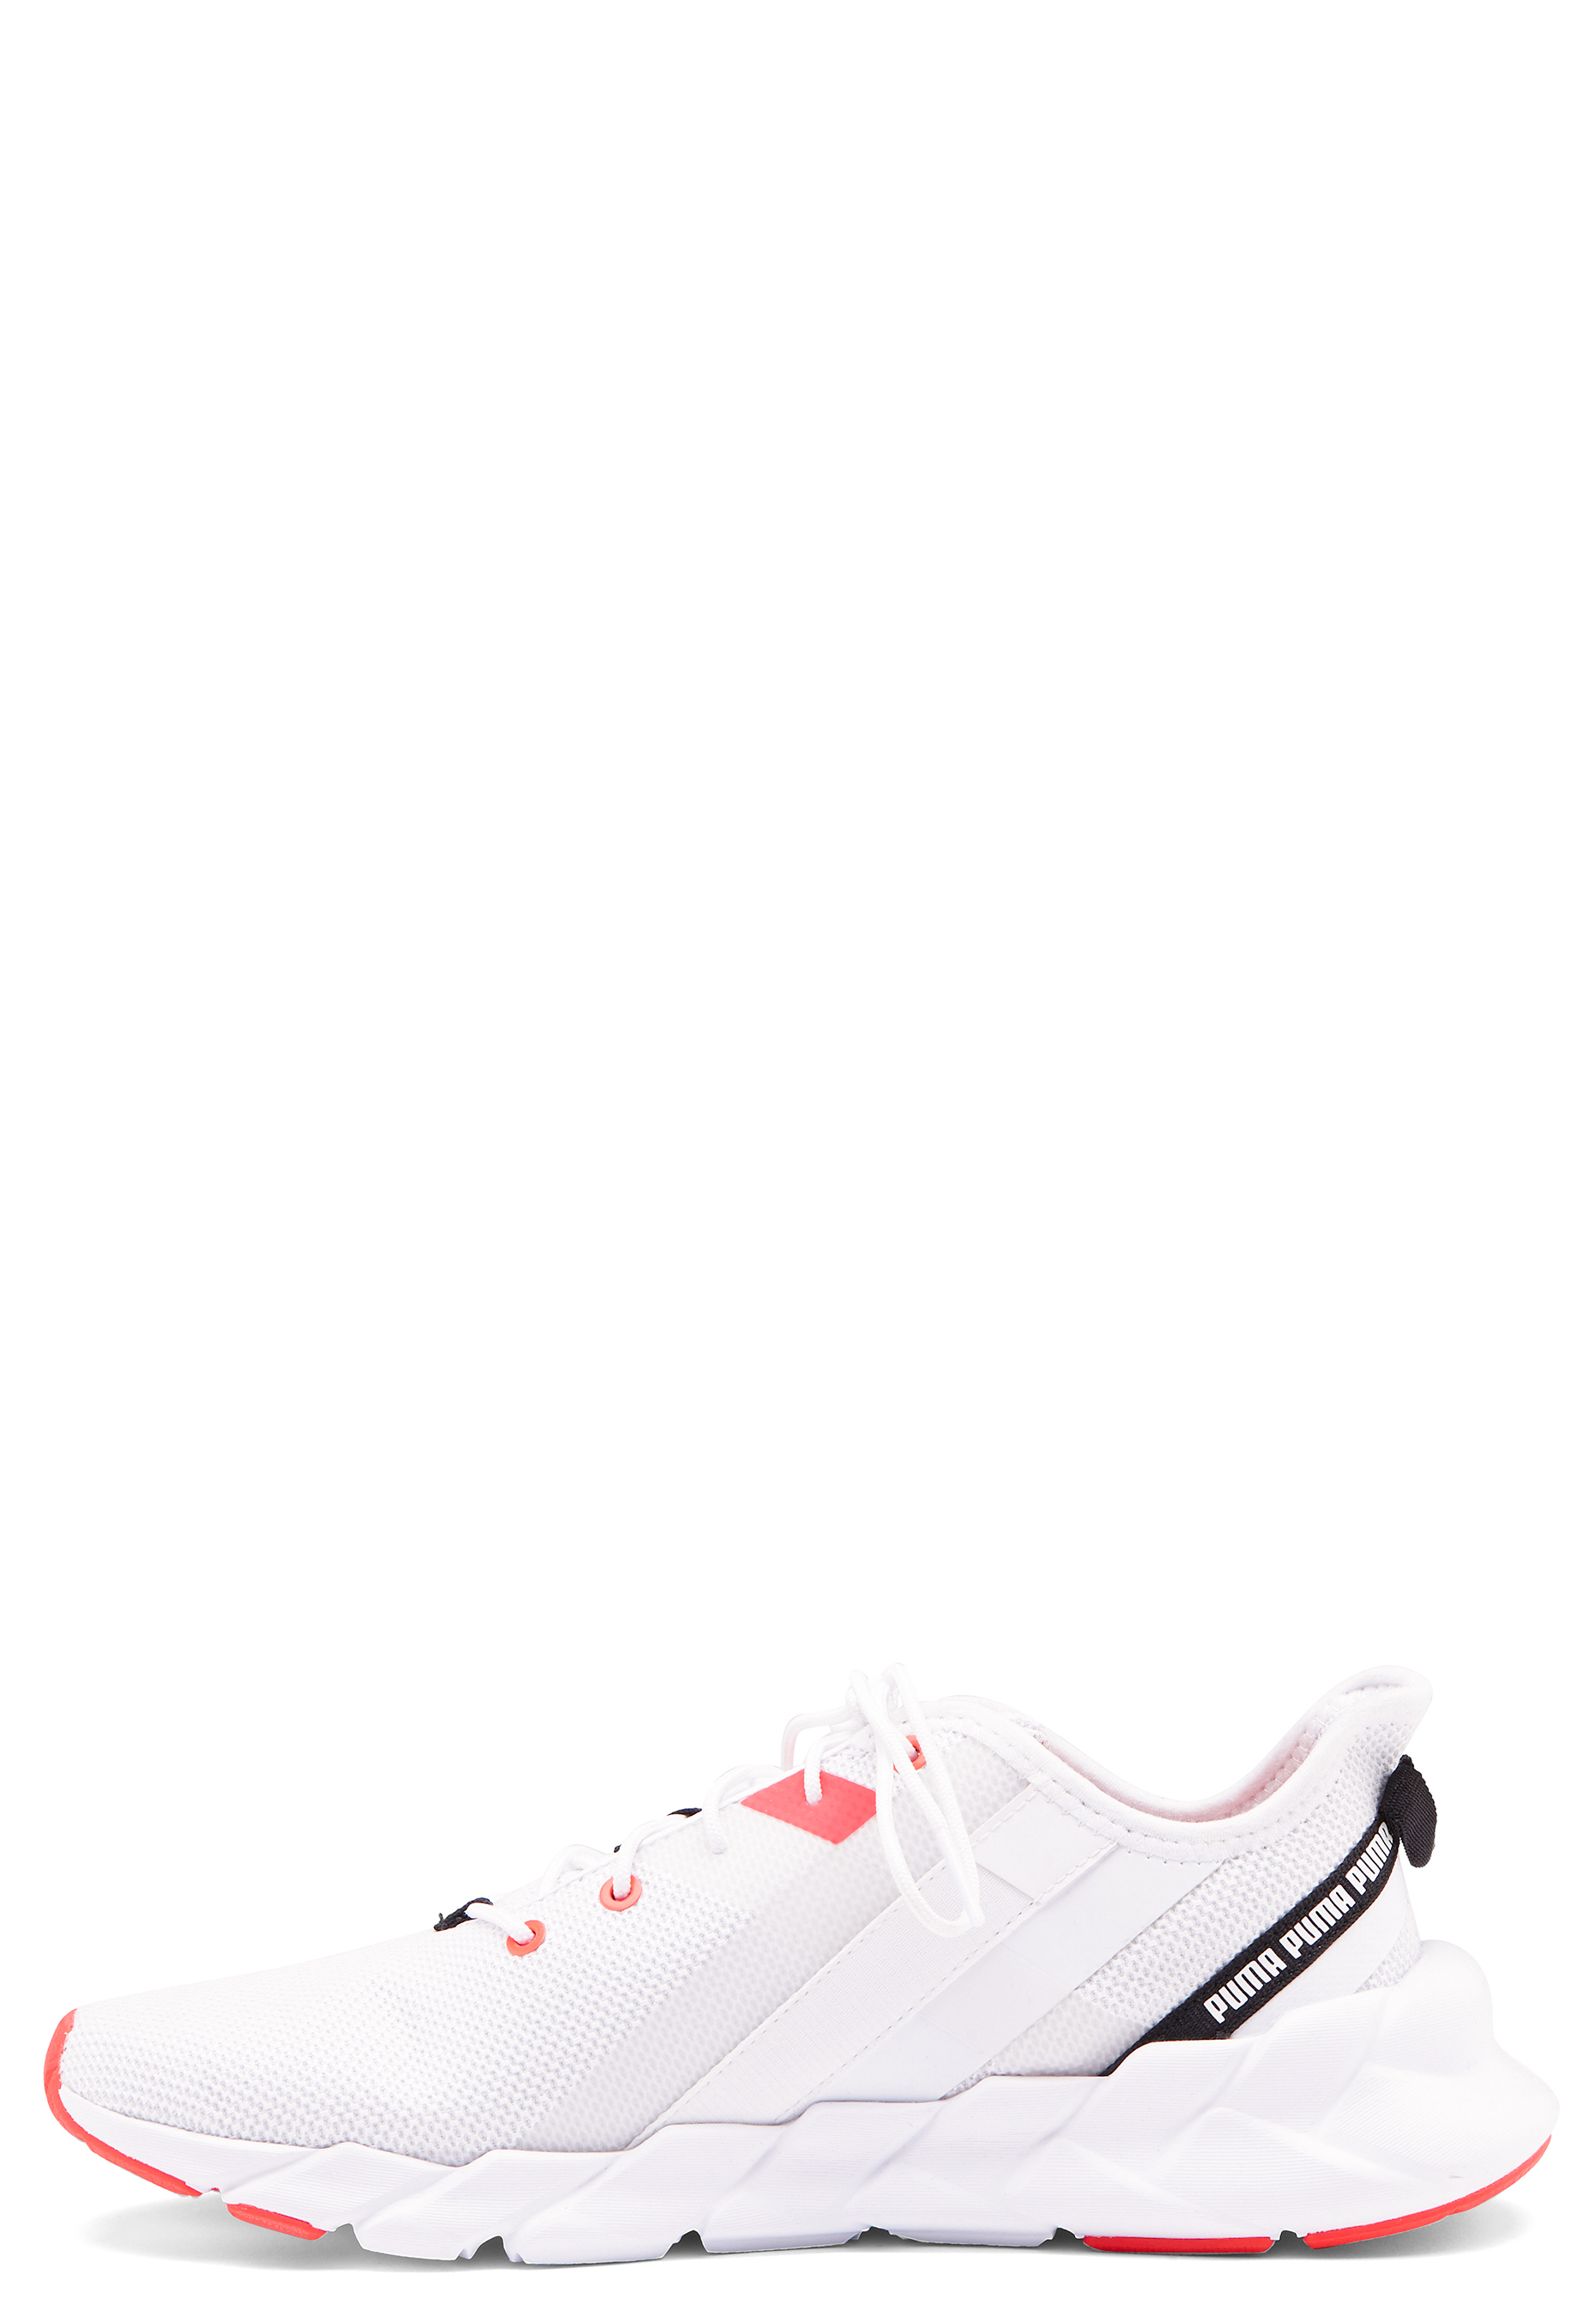 65a68cdc PUMA Weave XT Sneakers 005 White/Pink - Bubbleroom